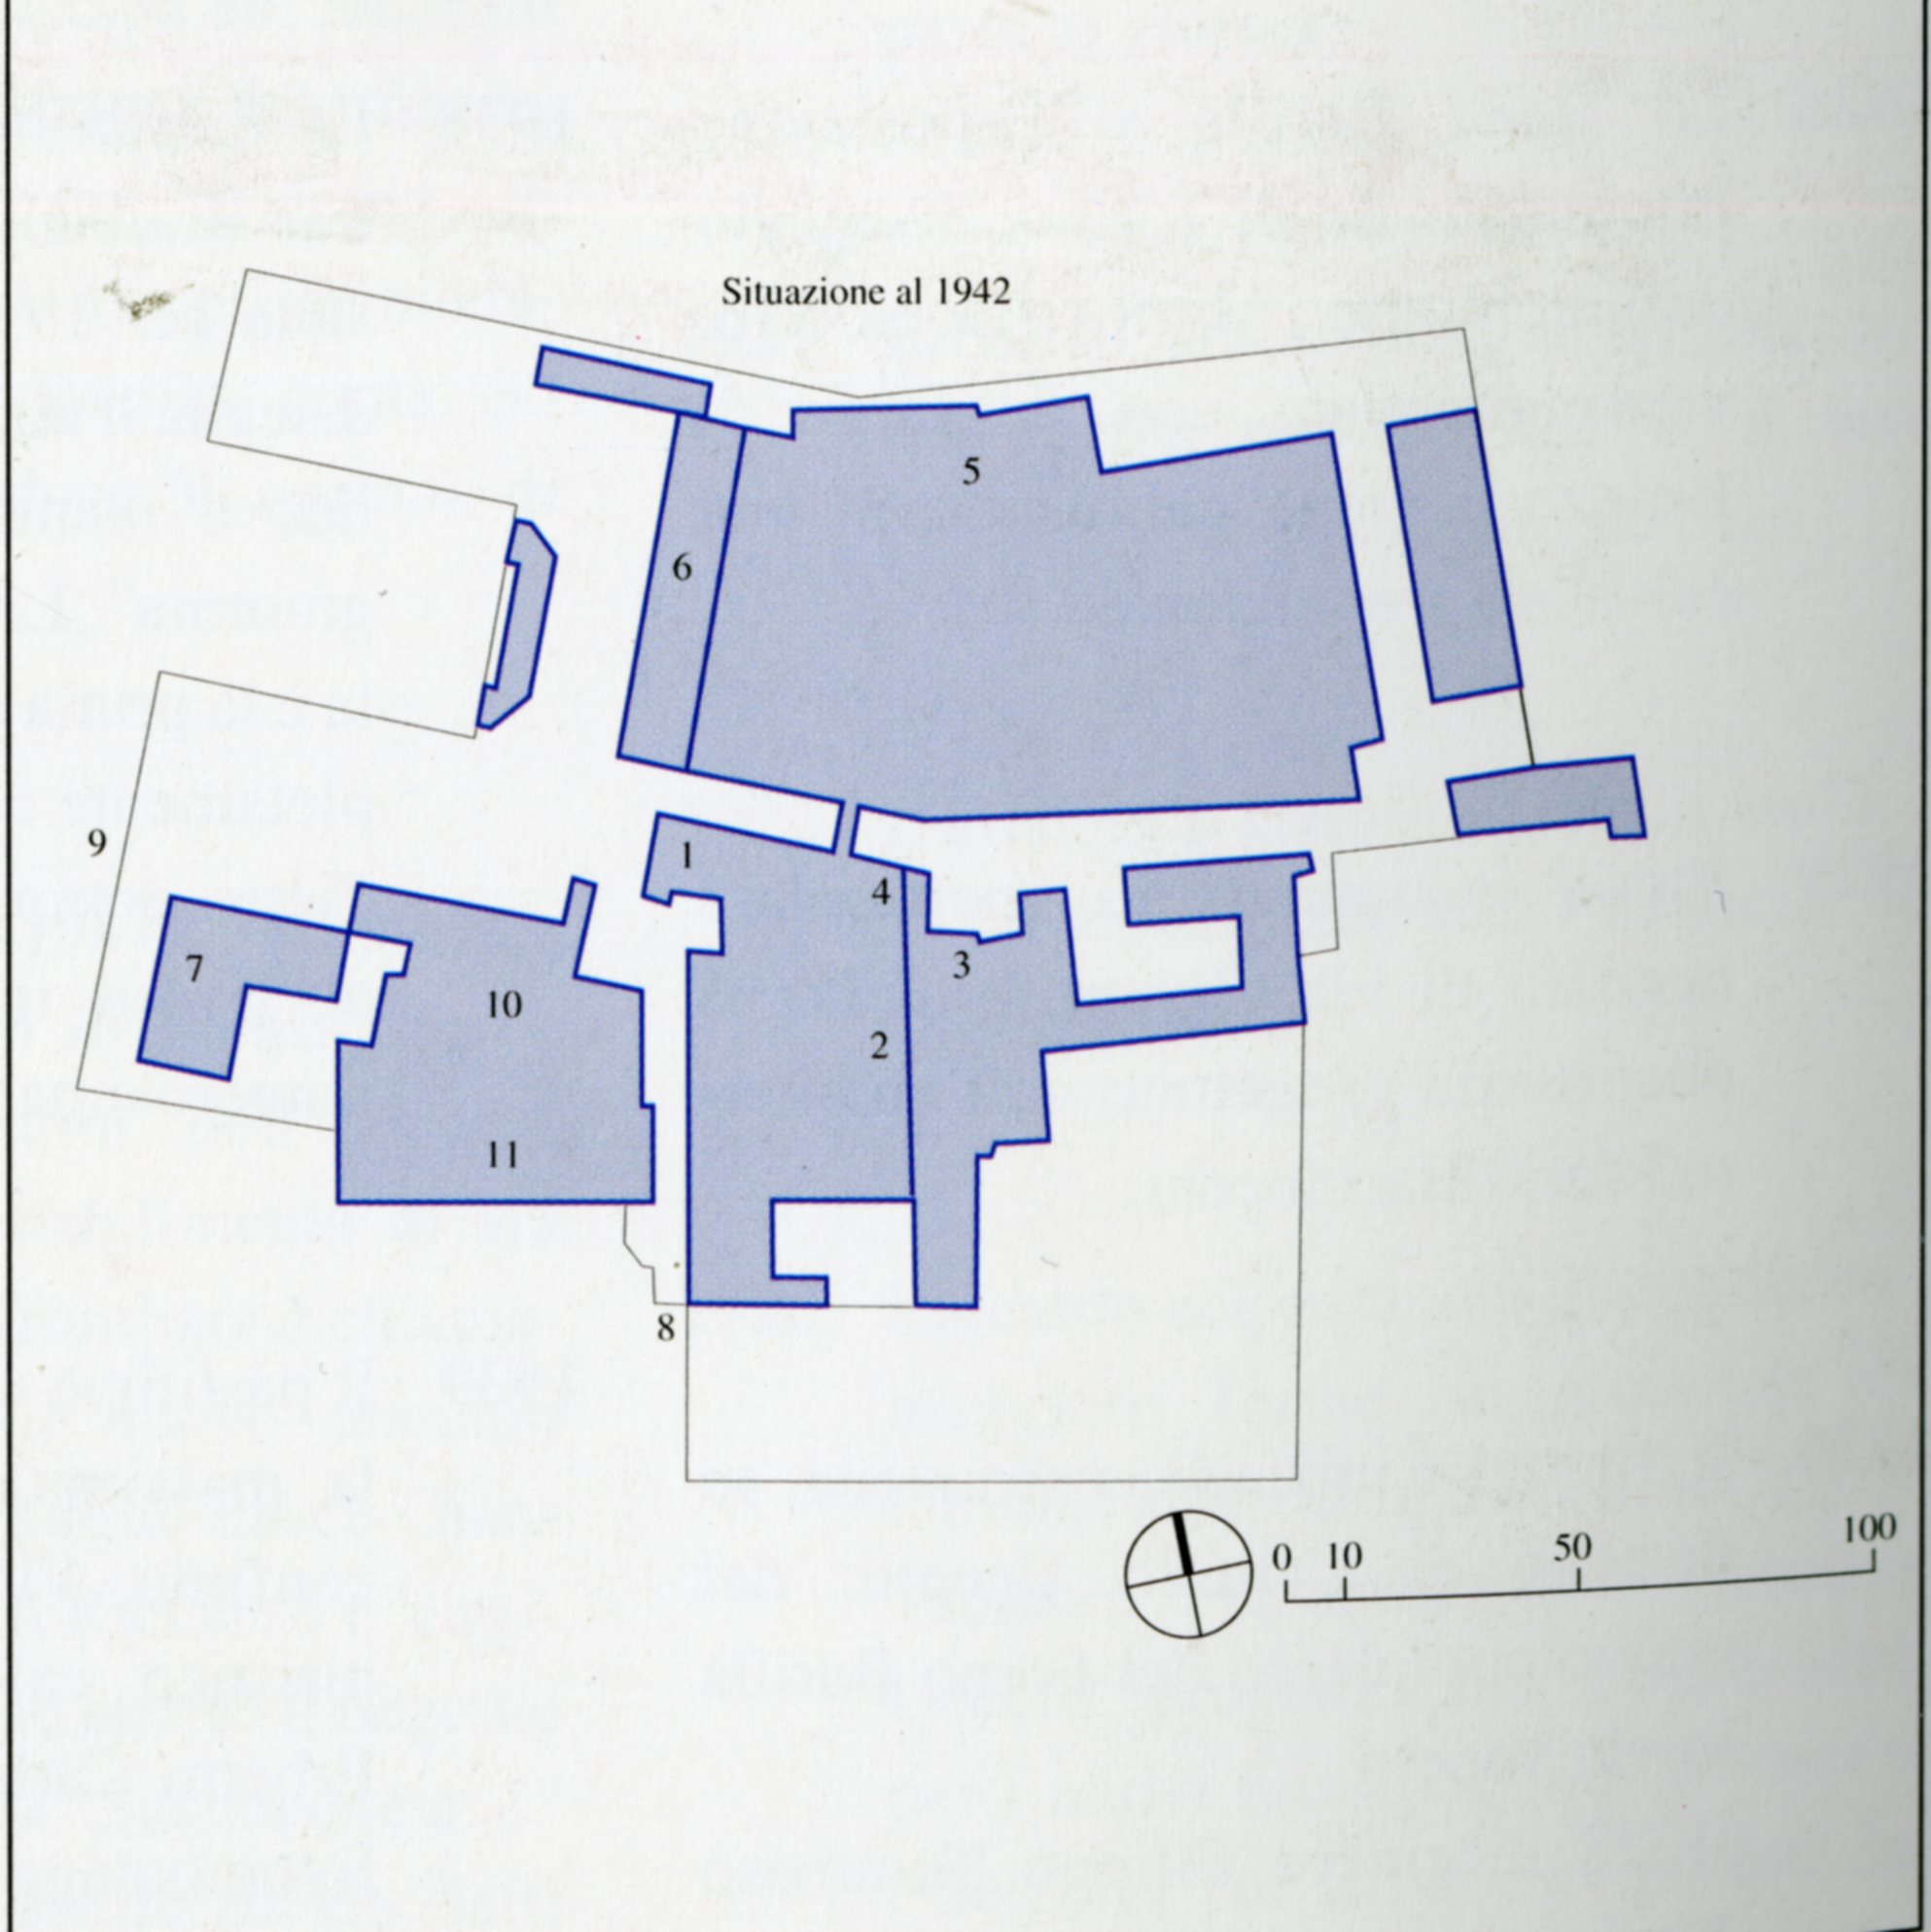 Floor plan of the building expansion of Barilla complex in 1942: 1) Offices and residence building, 1908; 2) Pasta factory, 1911; 3) Church of Saint Anthony, erected in 1903;04) Extension of the Pasta Factory, architect - Camillo Uccelli, 1922; 5) New ove